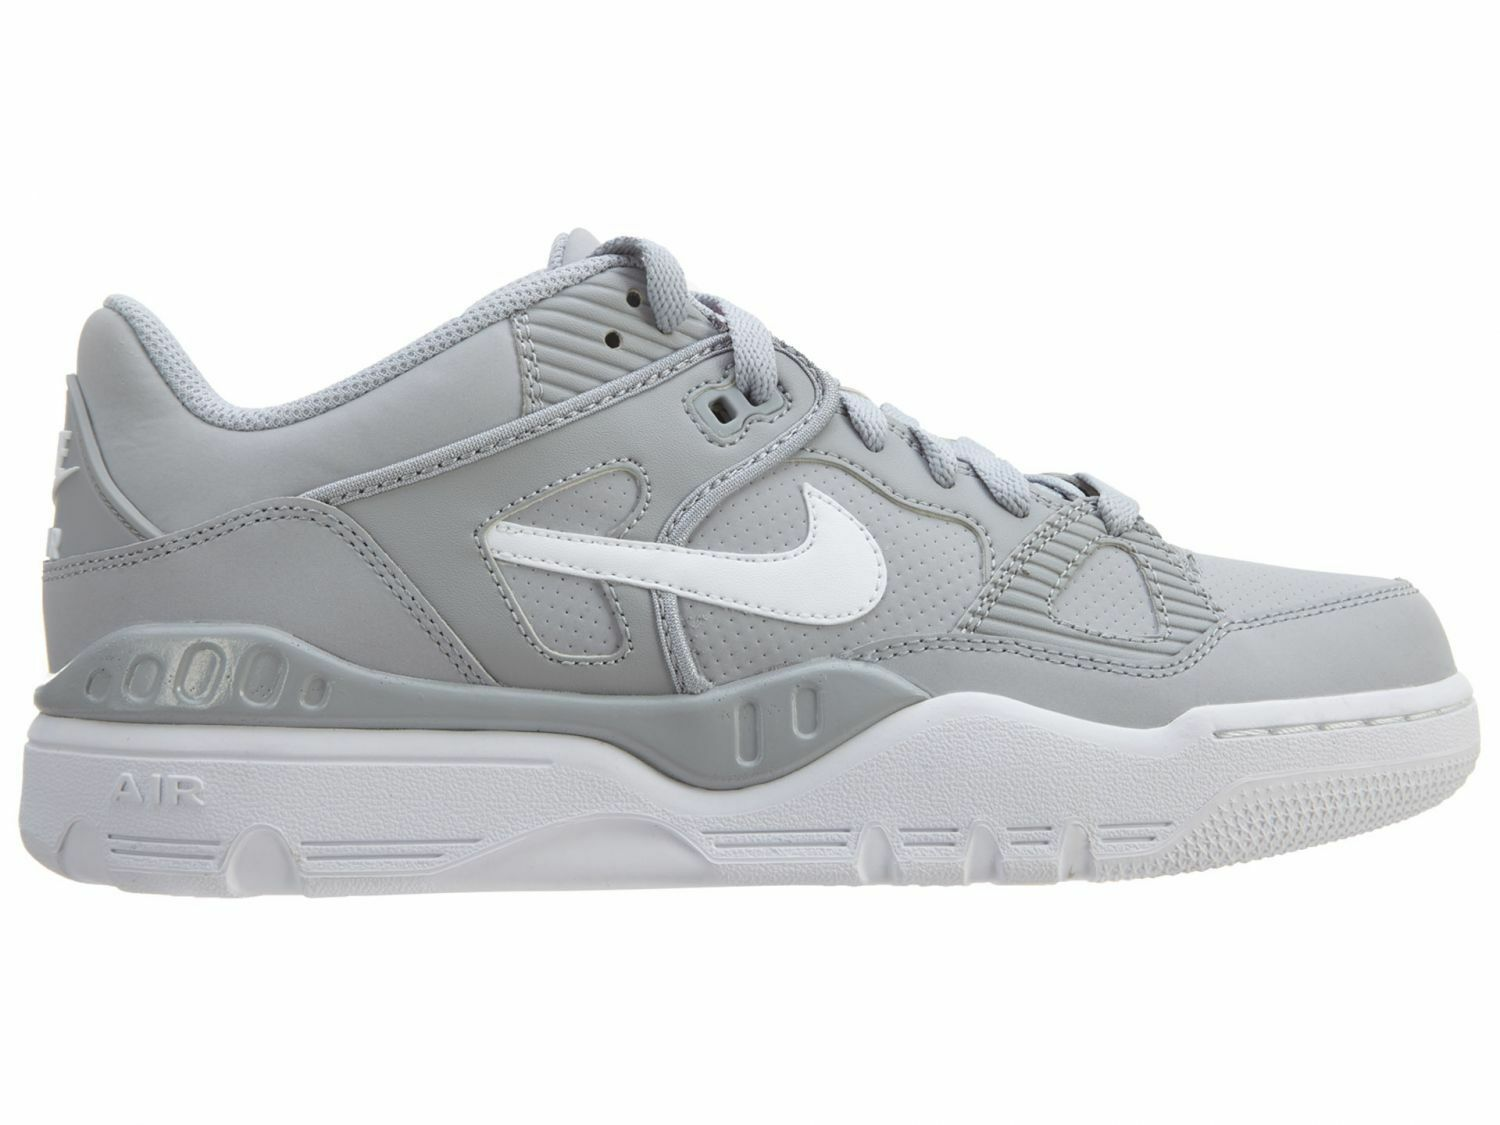 Nike Air Force III Low Mens 313640-002 Wolf Grey White Athletic shoes Size 8.5